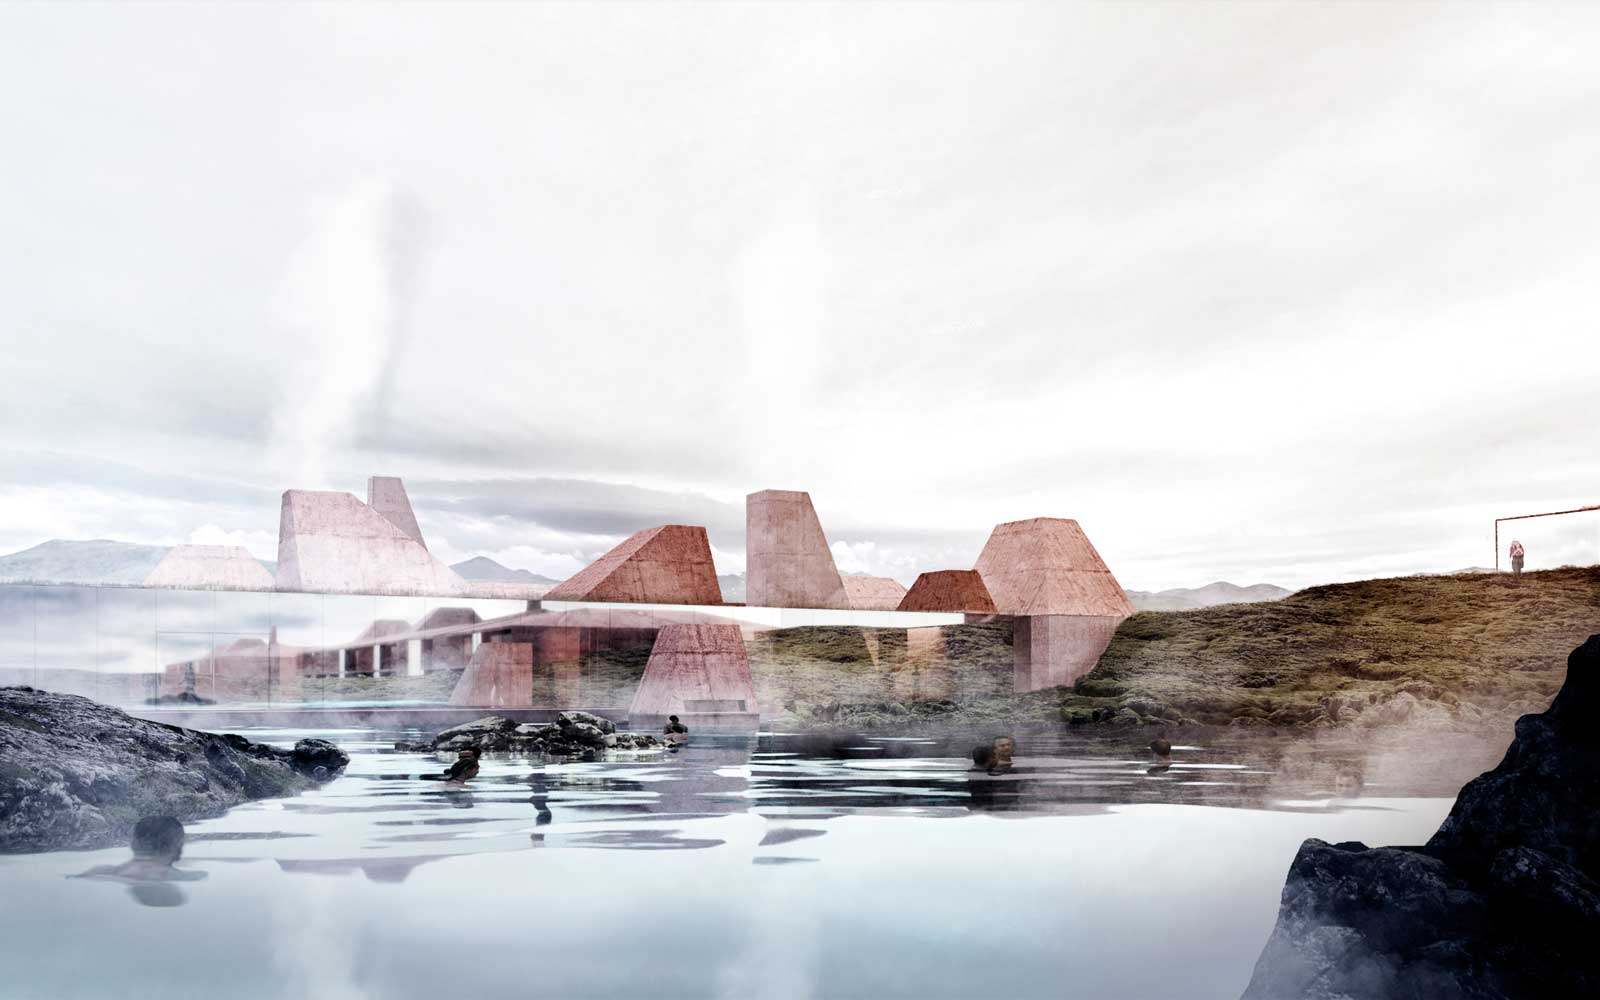 Iceland Has a Plan to Build a Resort Hidden by Volcanoes